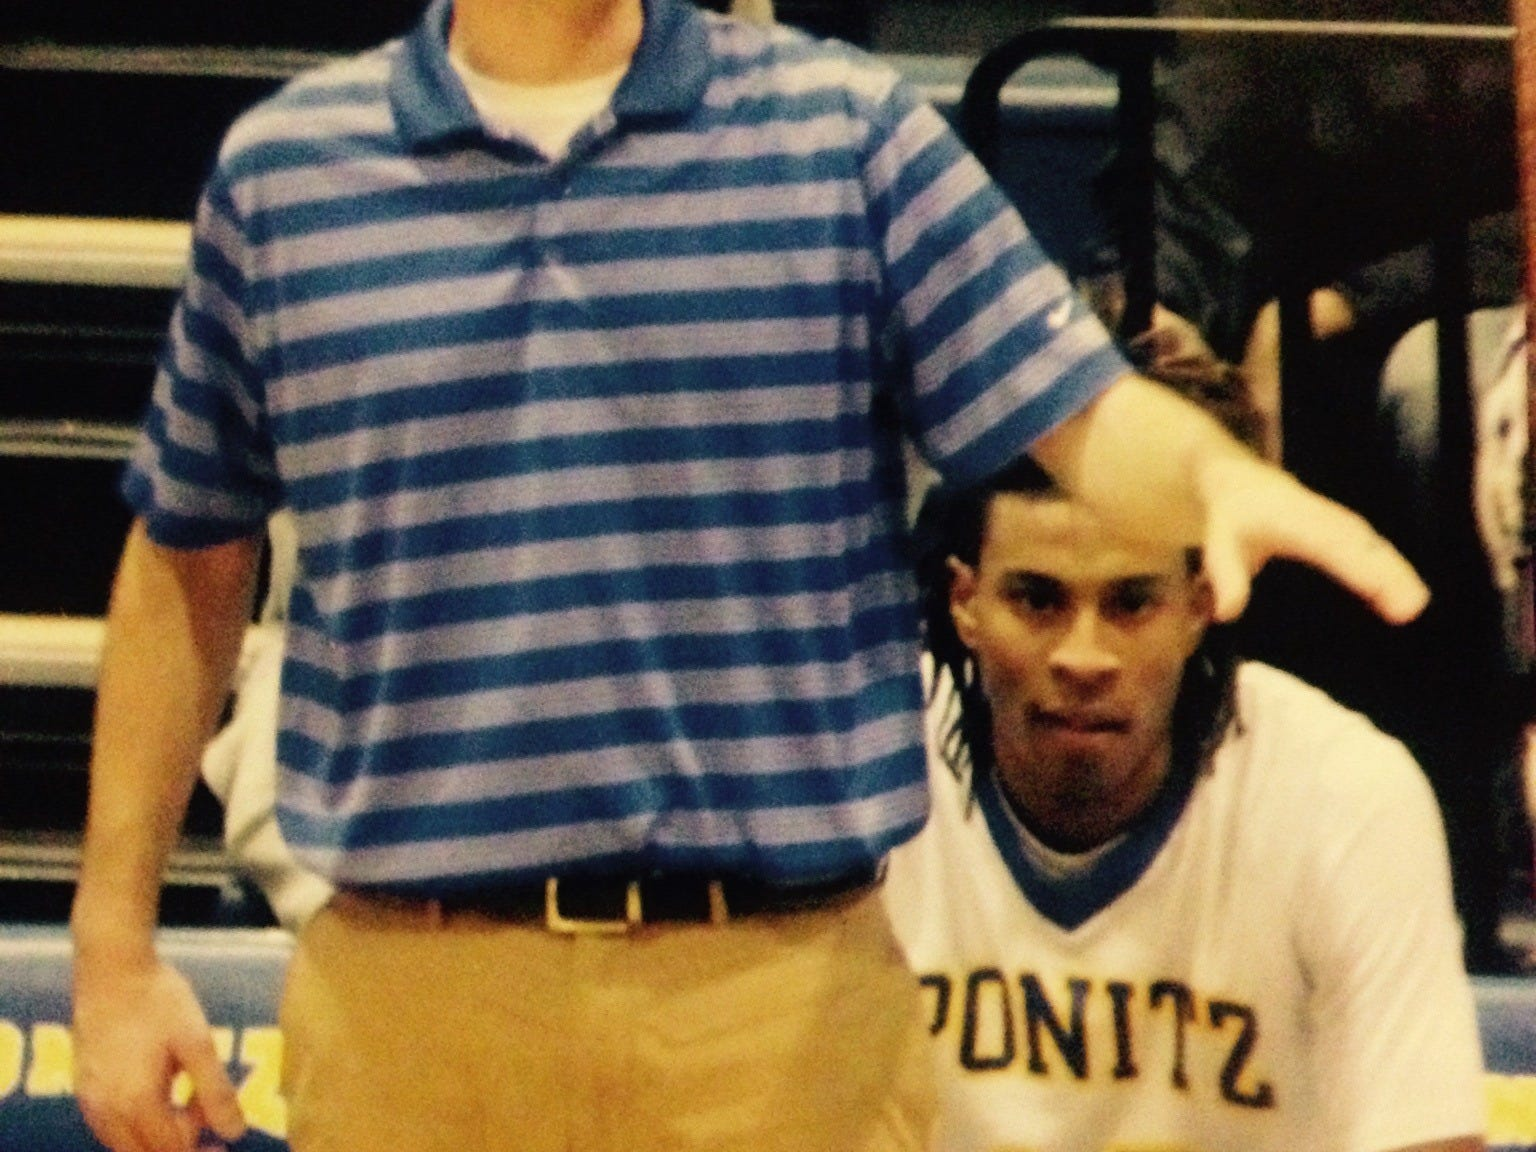 Shaun O'Connell led Ponitz Career Tech to a record of 35-12 the past two seasons, including 19-6 overall this past year with a 9-1 record in the Dayton Public League. The Pleasant Ridge resident takes over at Withrow High School.